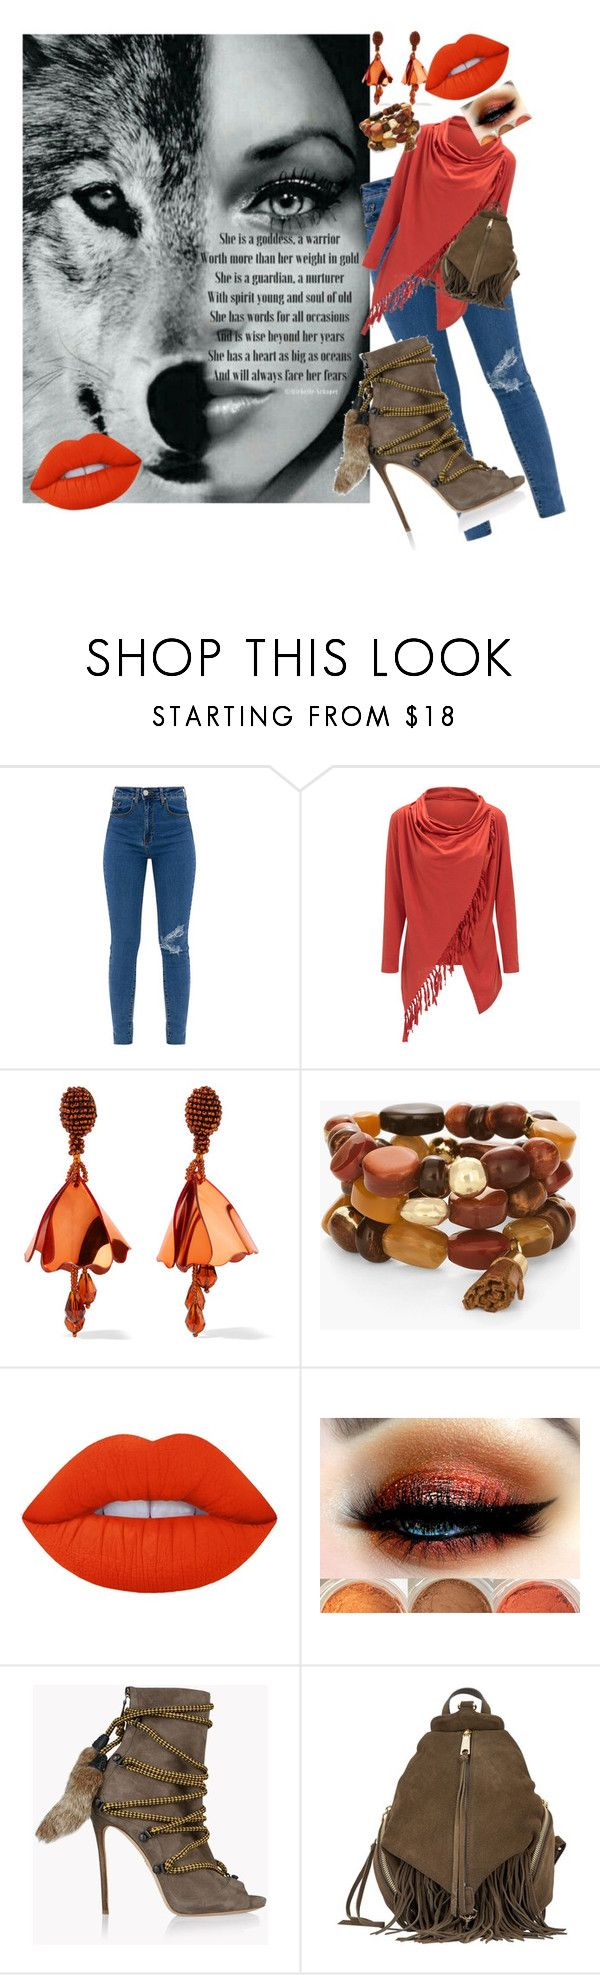 """""""Cherokee woman"""" by legendwings ❤ liked on Polyvore featuring WithChic, Oscar de la Renta, Chico's, Lime Crime, Dsquared2 and Rebecca Minkoff"""